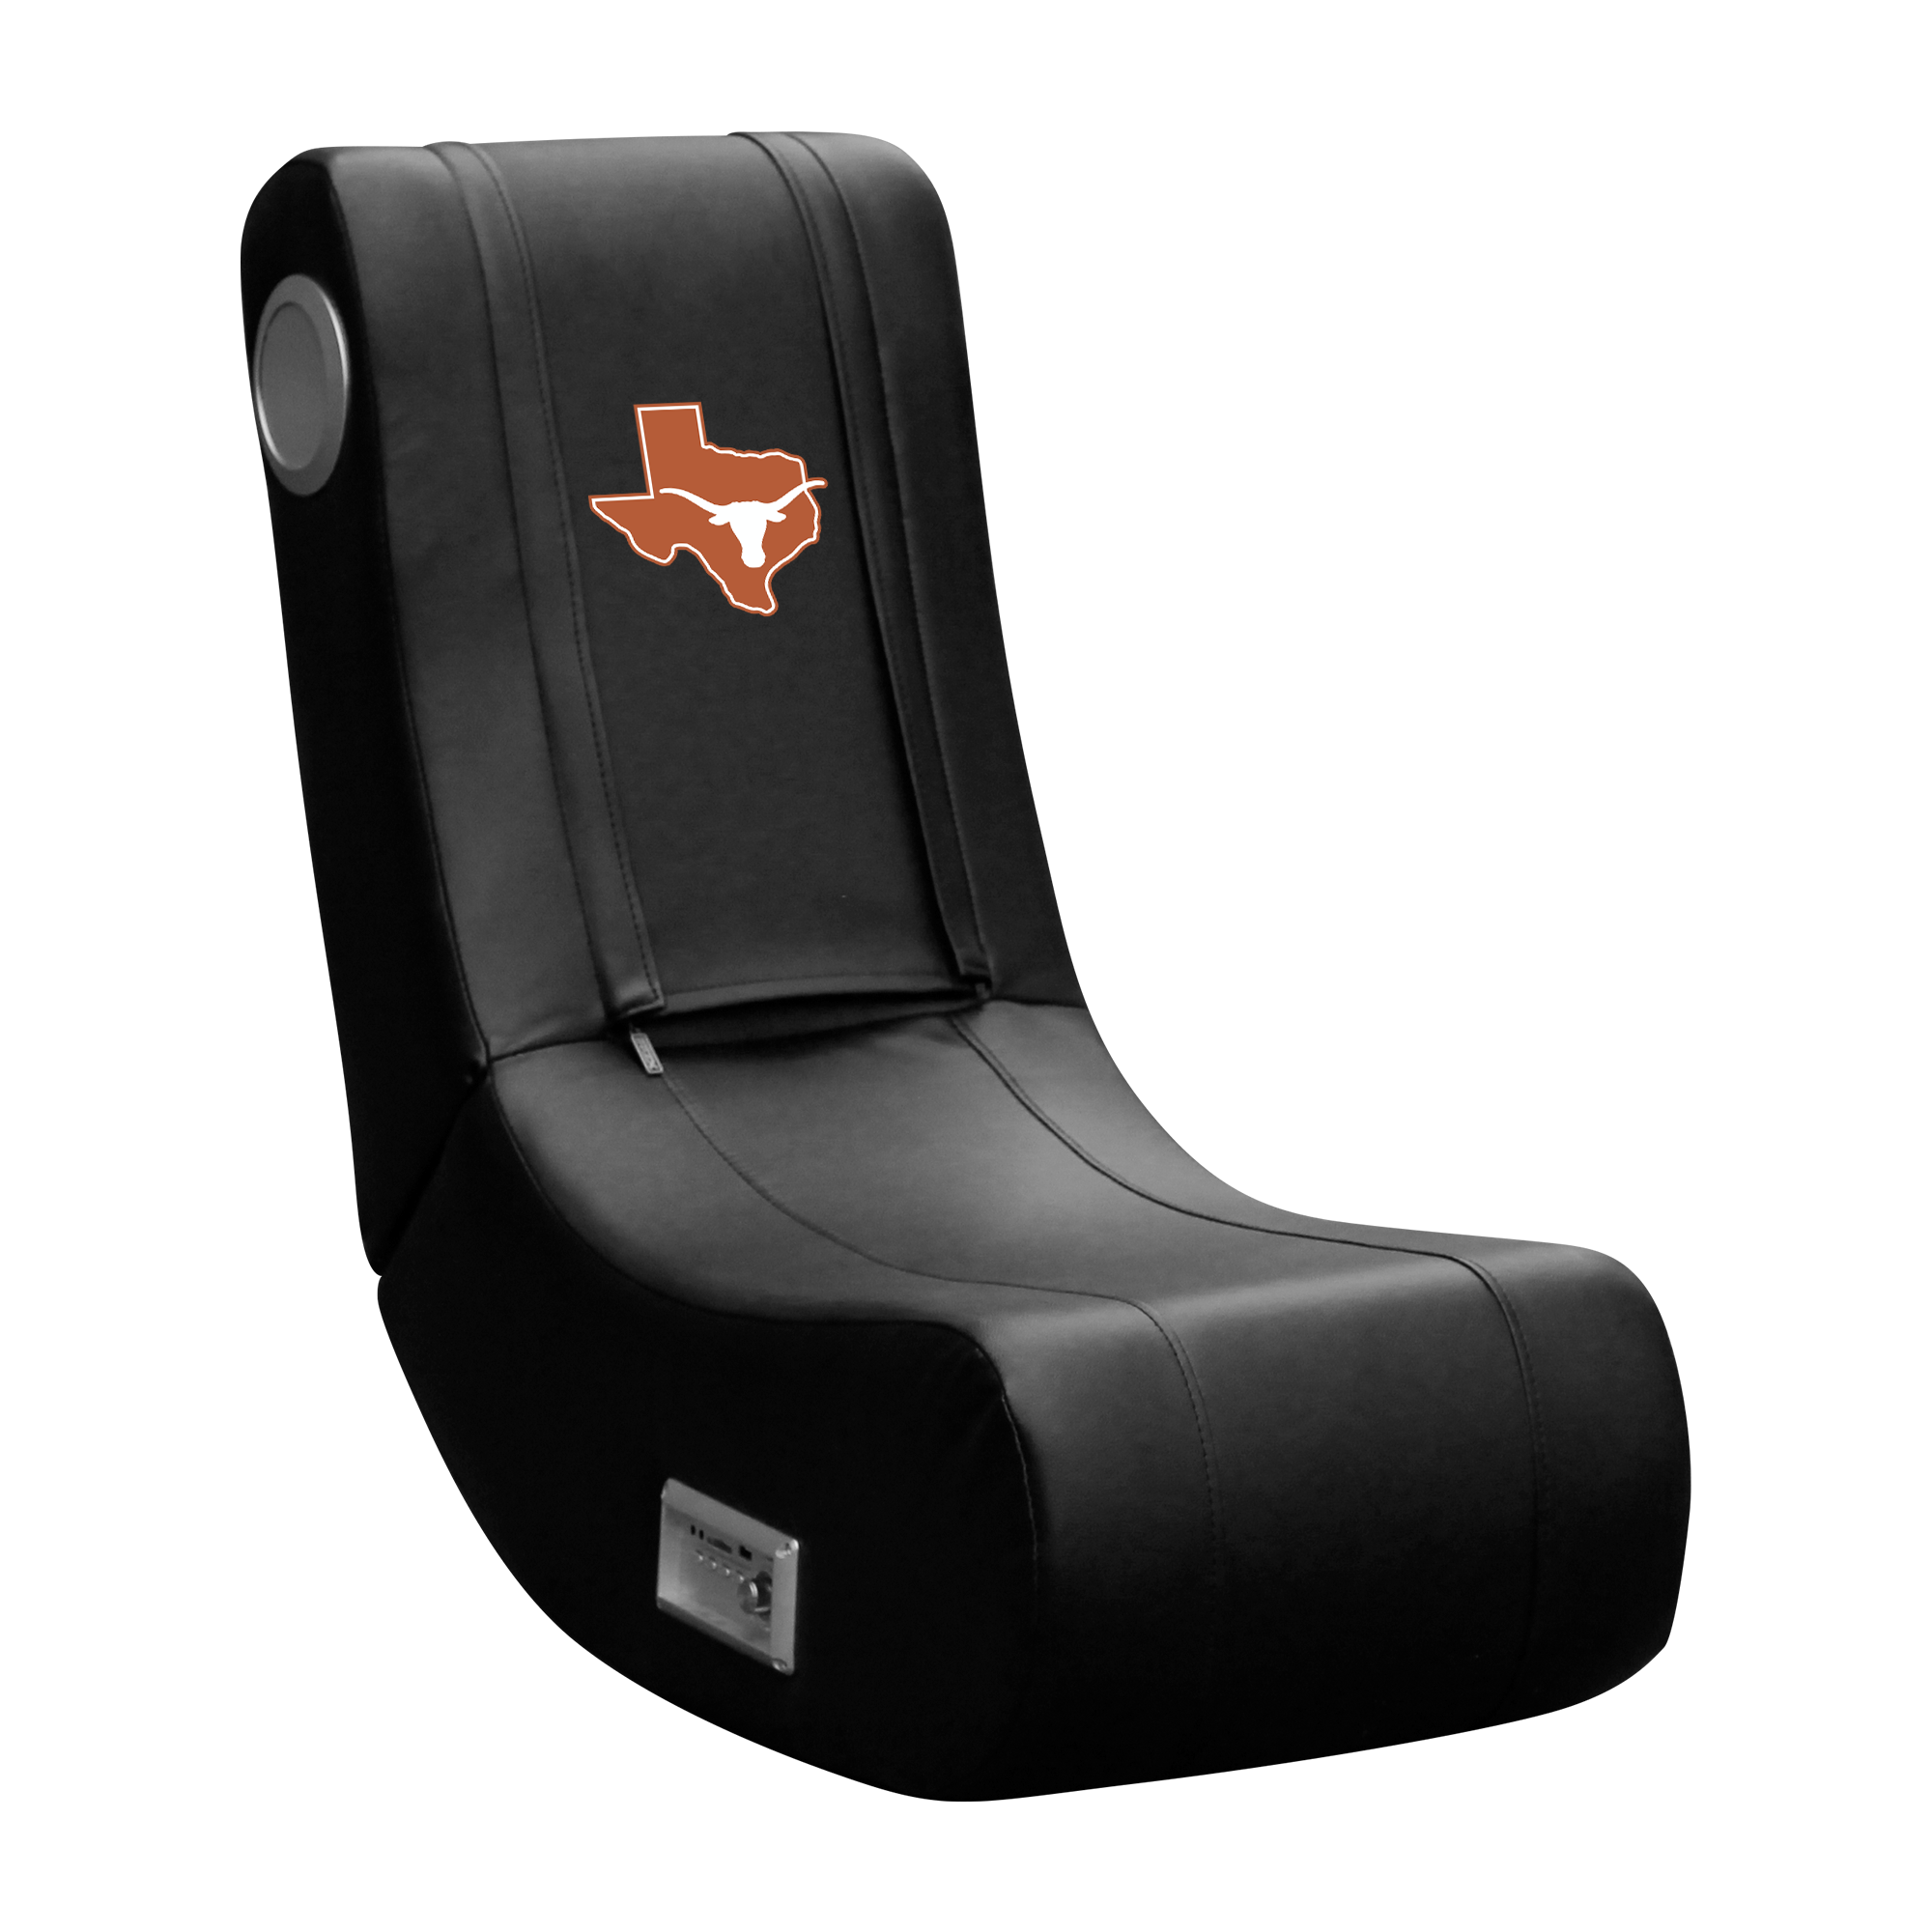 Game Rocker 100 with Texas Longhorns Secondary